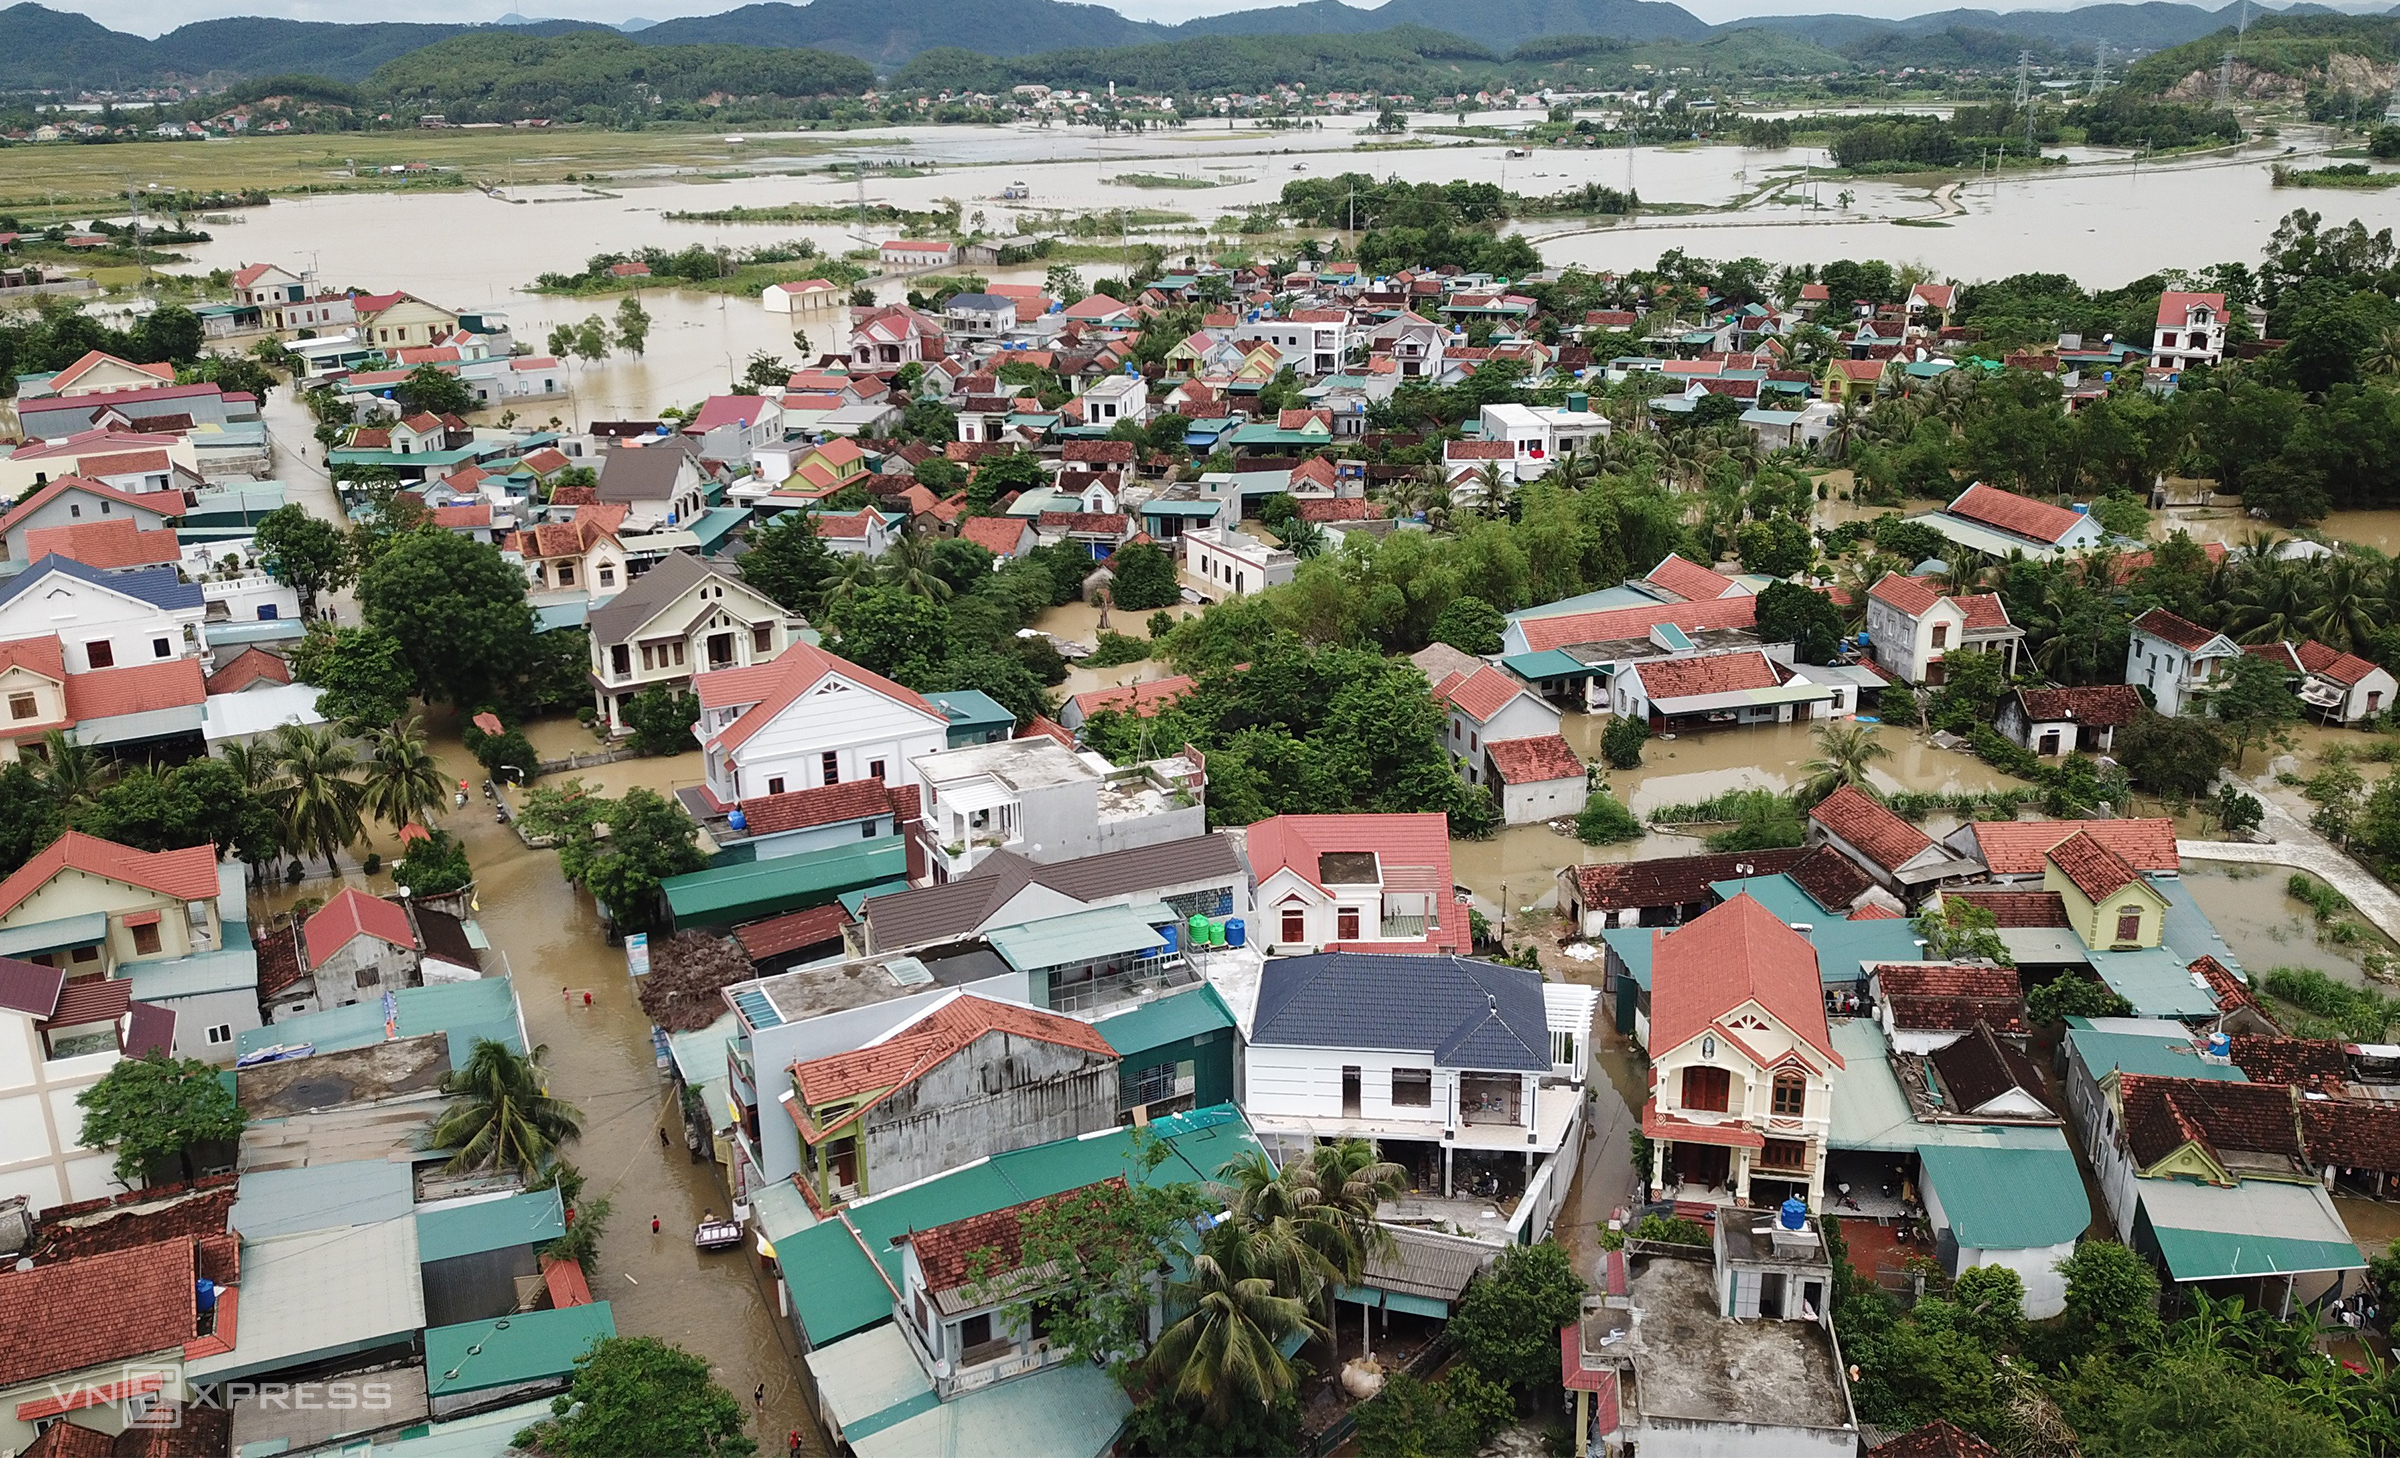 Quynh Lam Commune in Vietnams central Nghe An Province is flooded following heavy rains from Sept. 23 to 26. Photo by VnExpress/Nguyen Hai